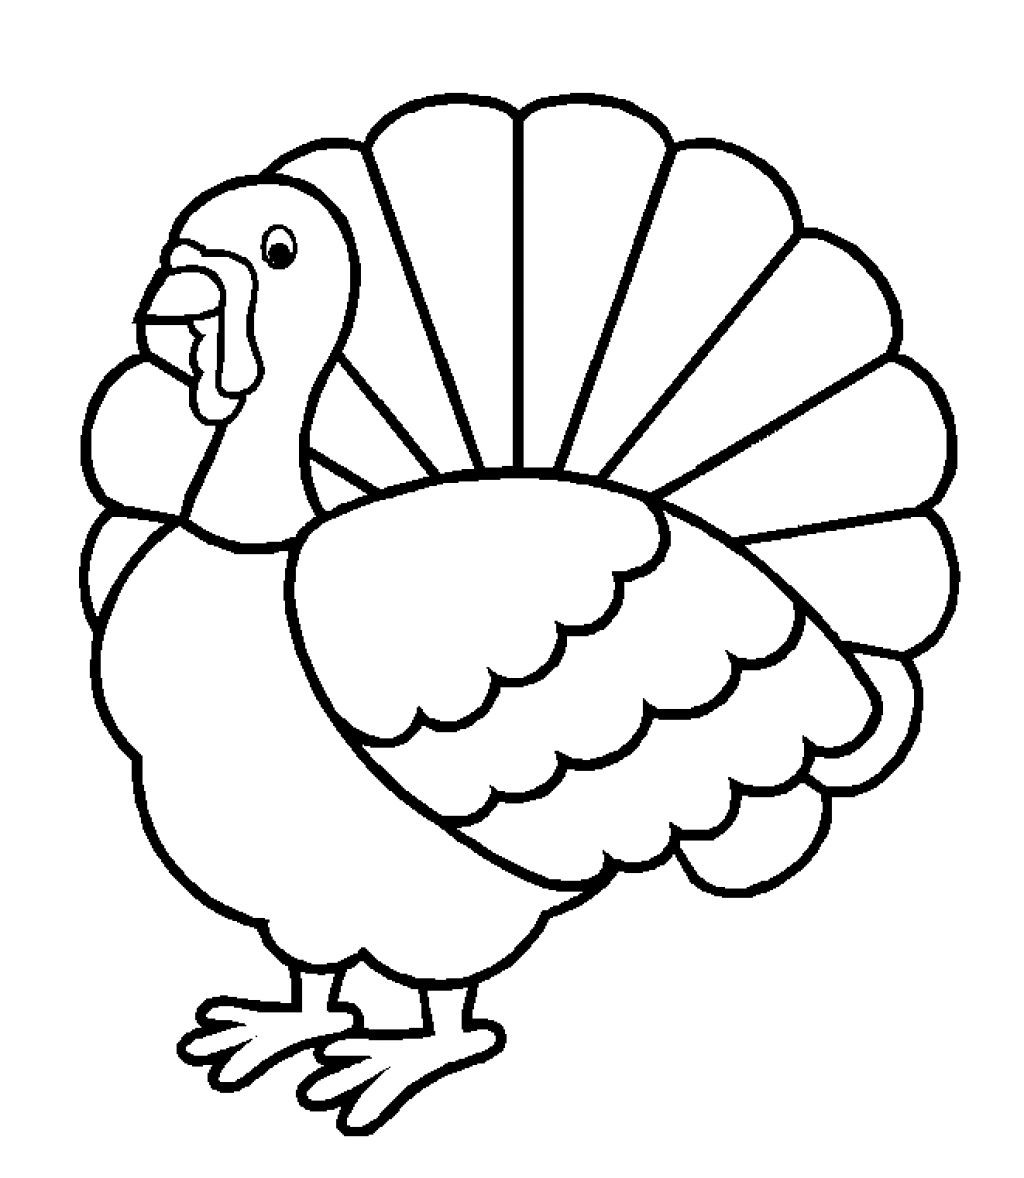 Turkey Drawing Outline At Getdrawings